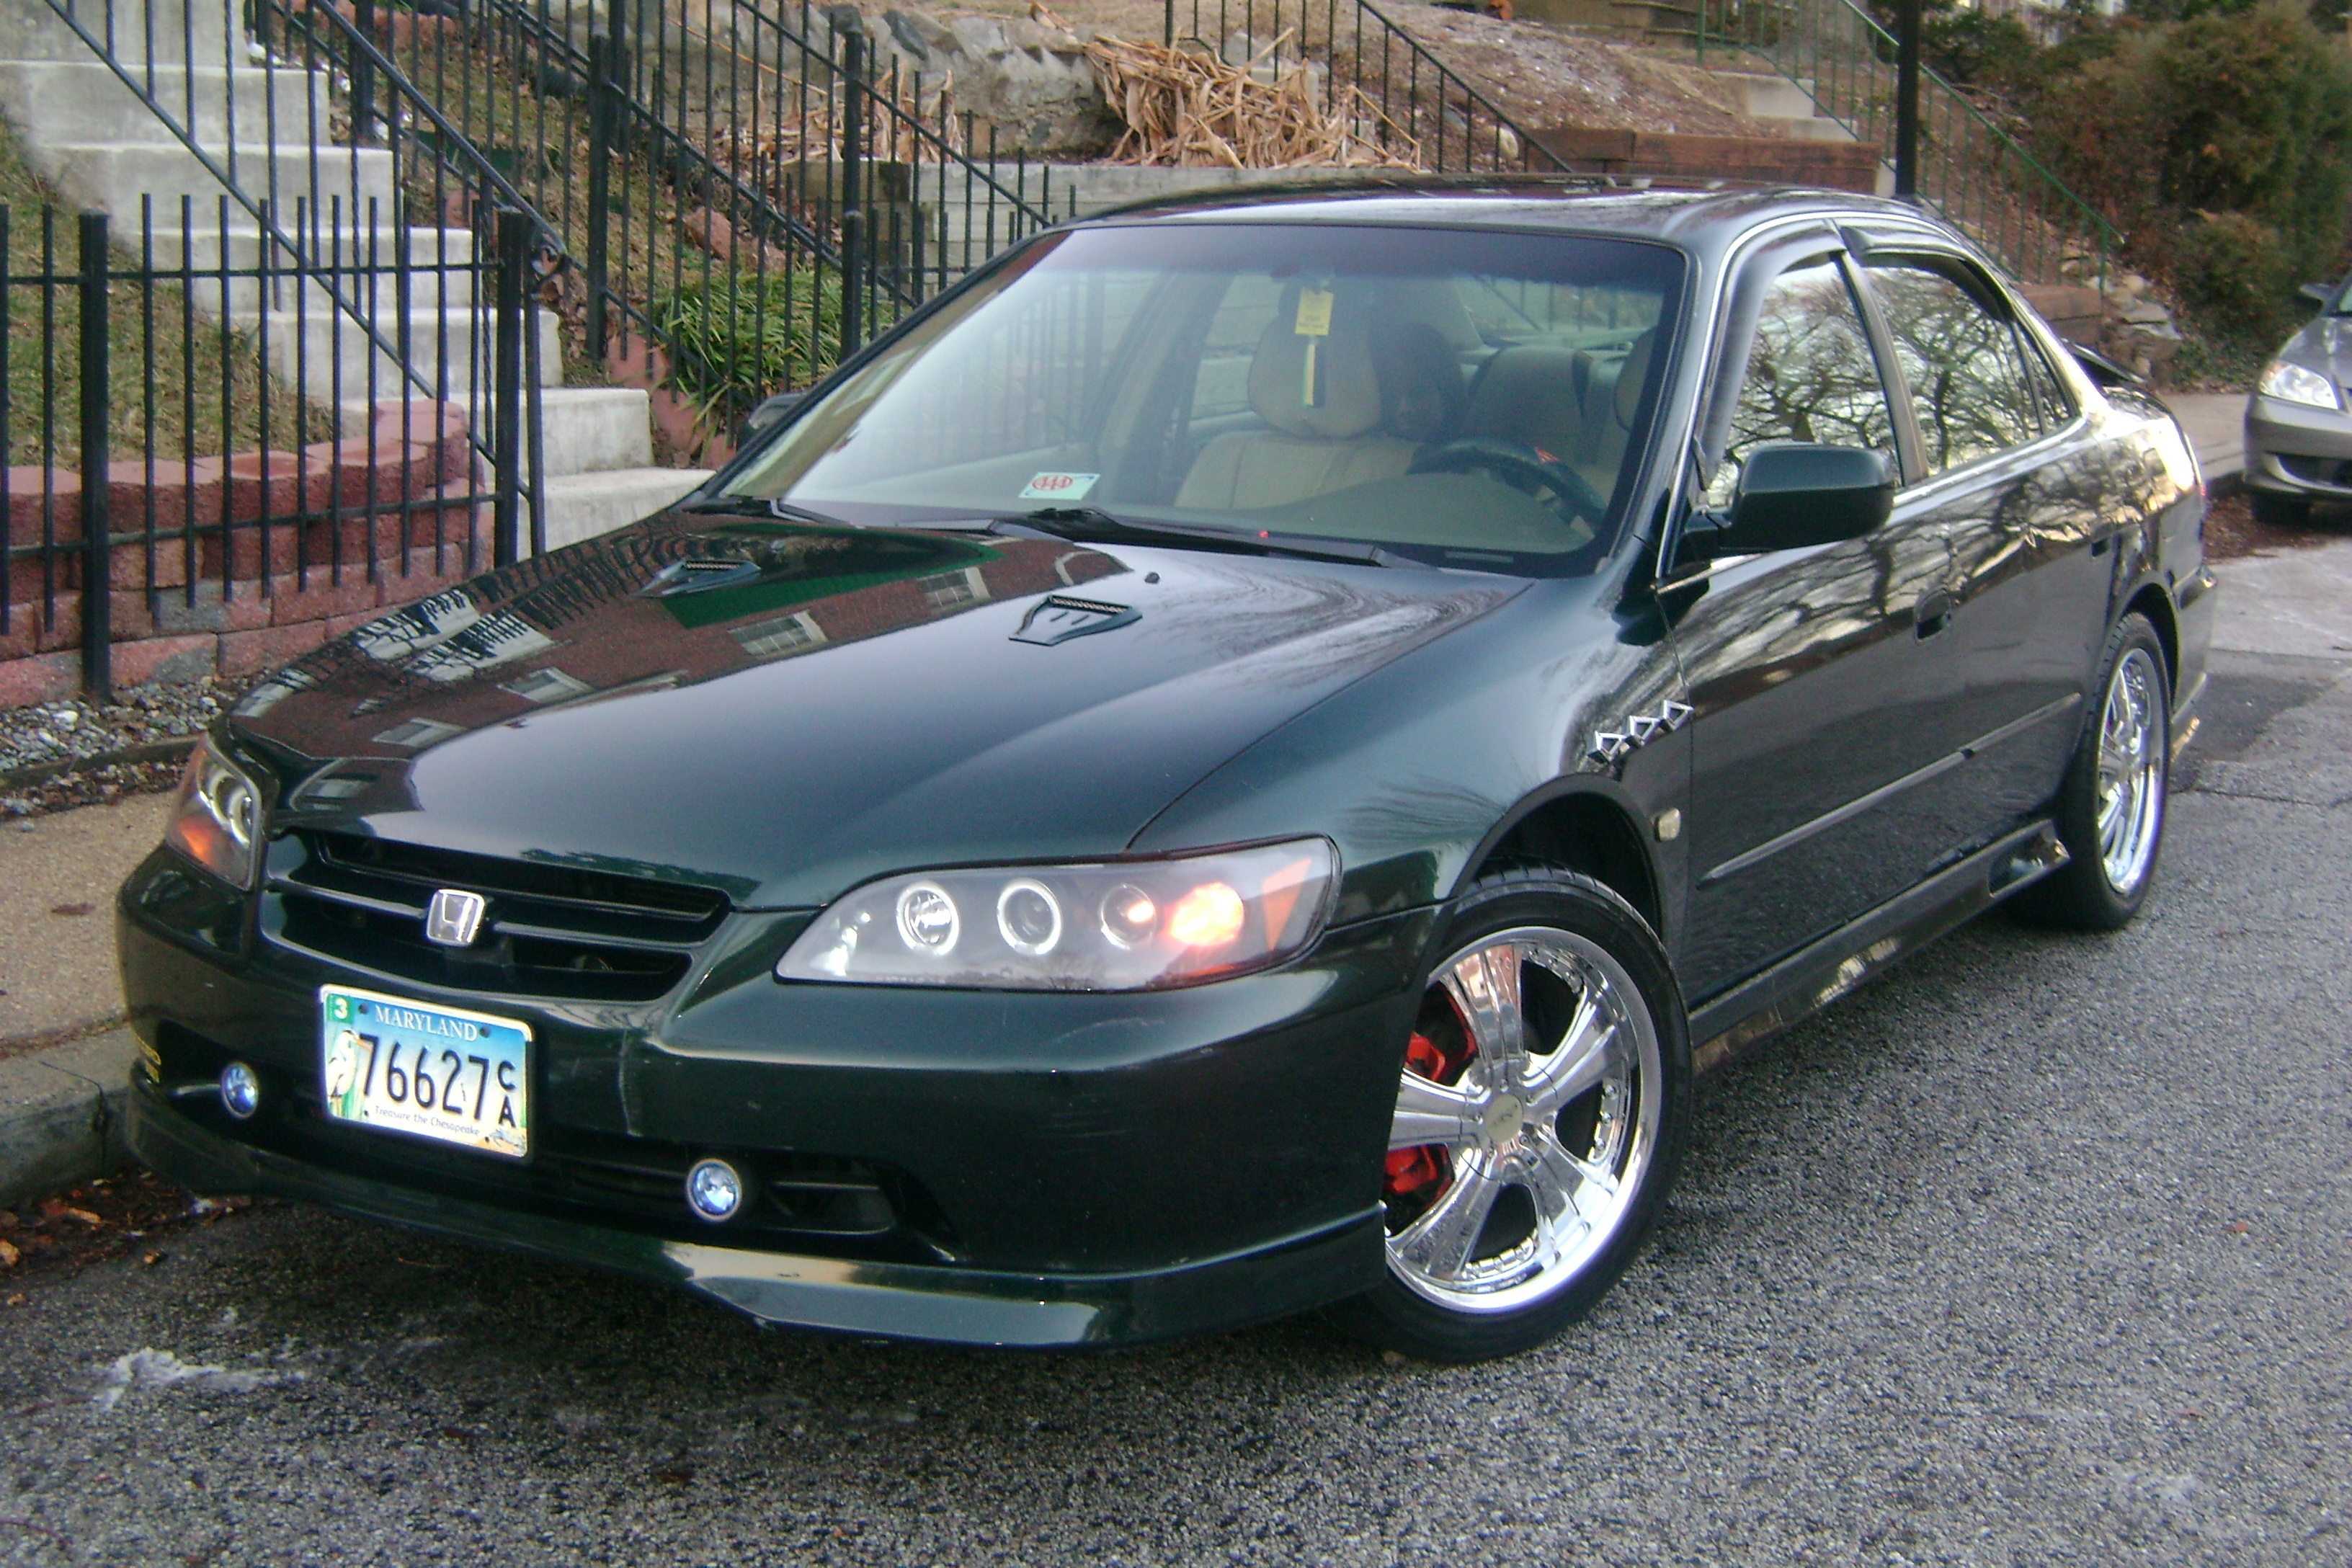 Bull_002 2000 Honda Accord 12420064